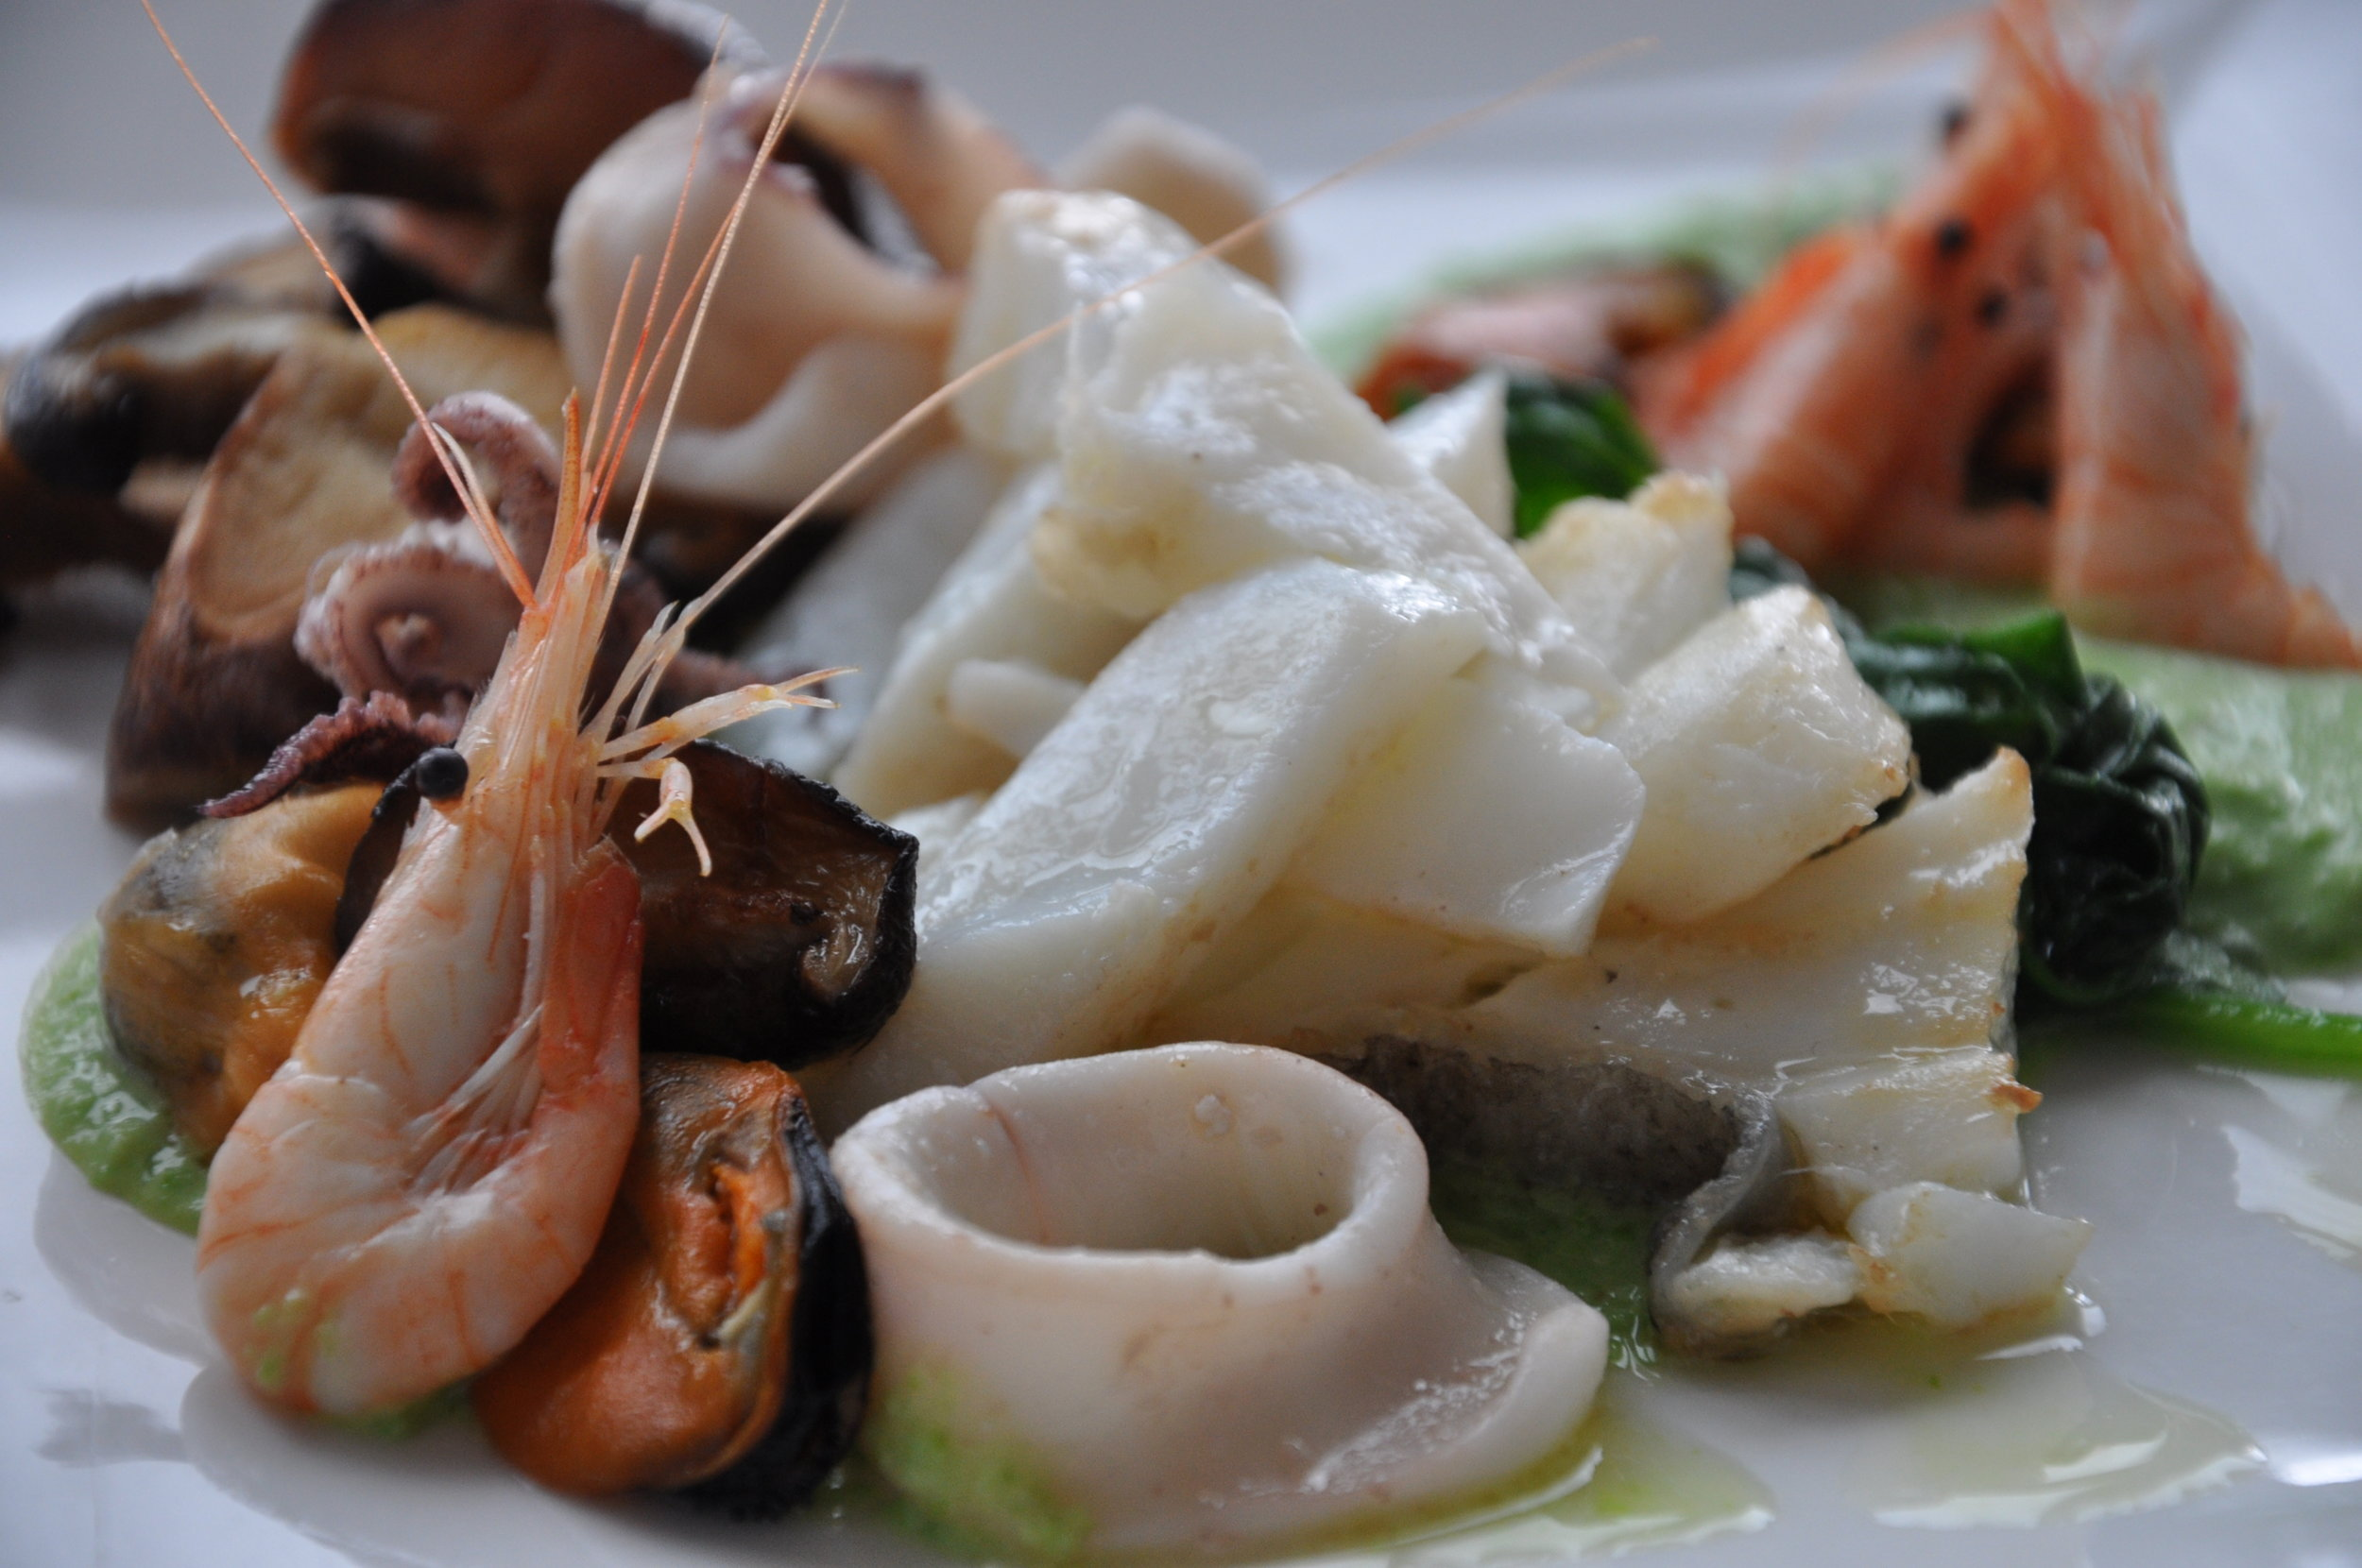 Mixed Seafood Plate with cod, shrimp, calamari and mushrooms - available on Shutterstock